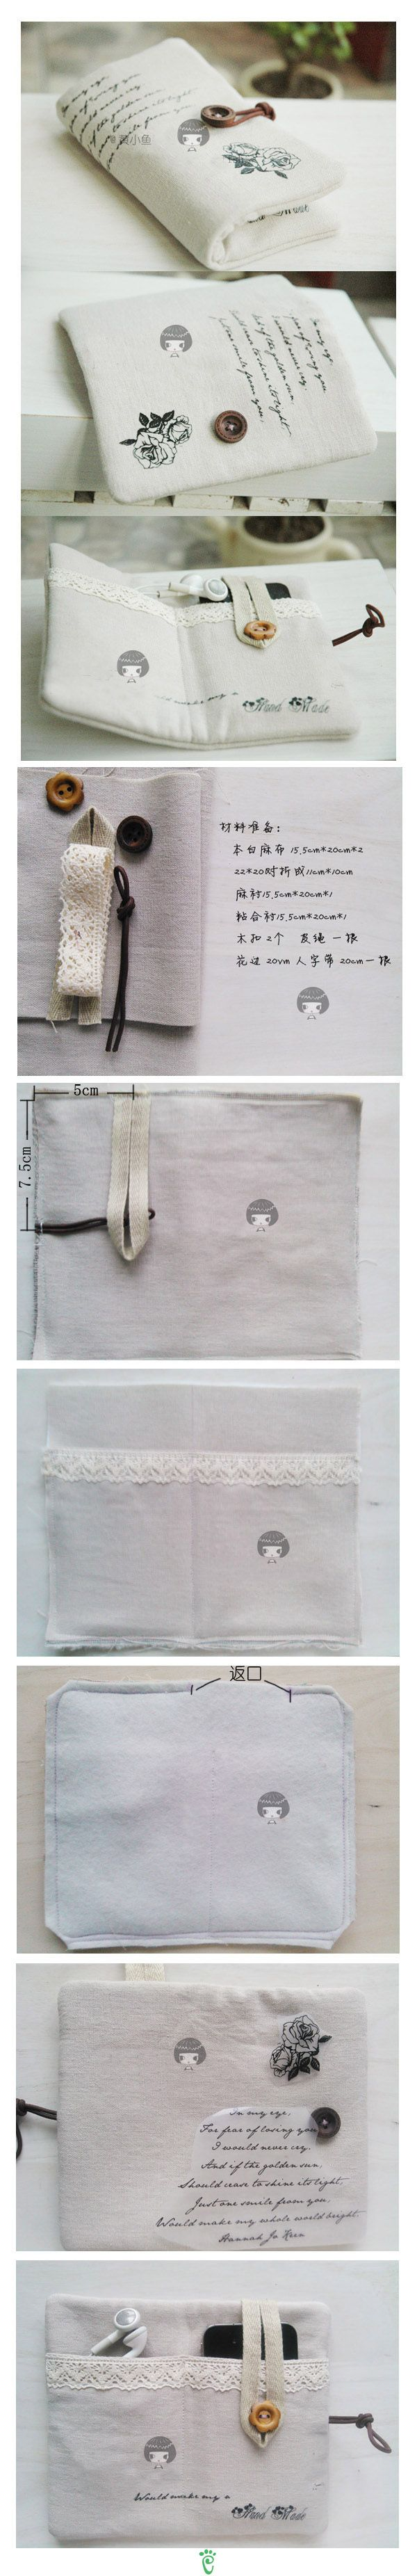 Folding pocket pouch for ipod or iphone and ear buds